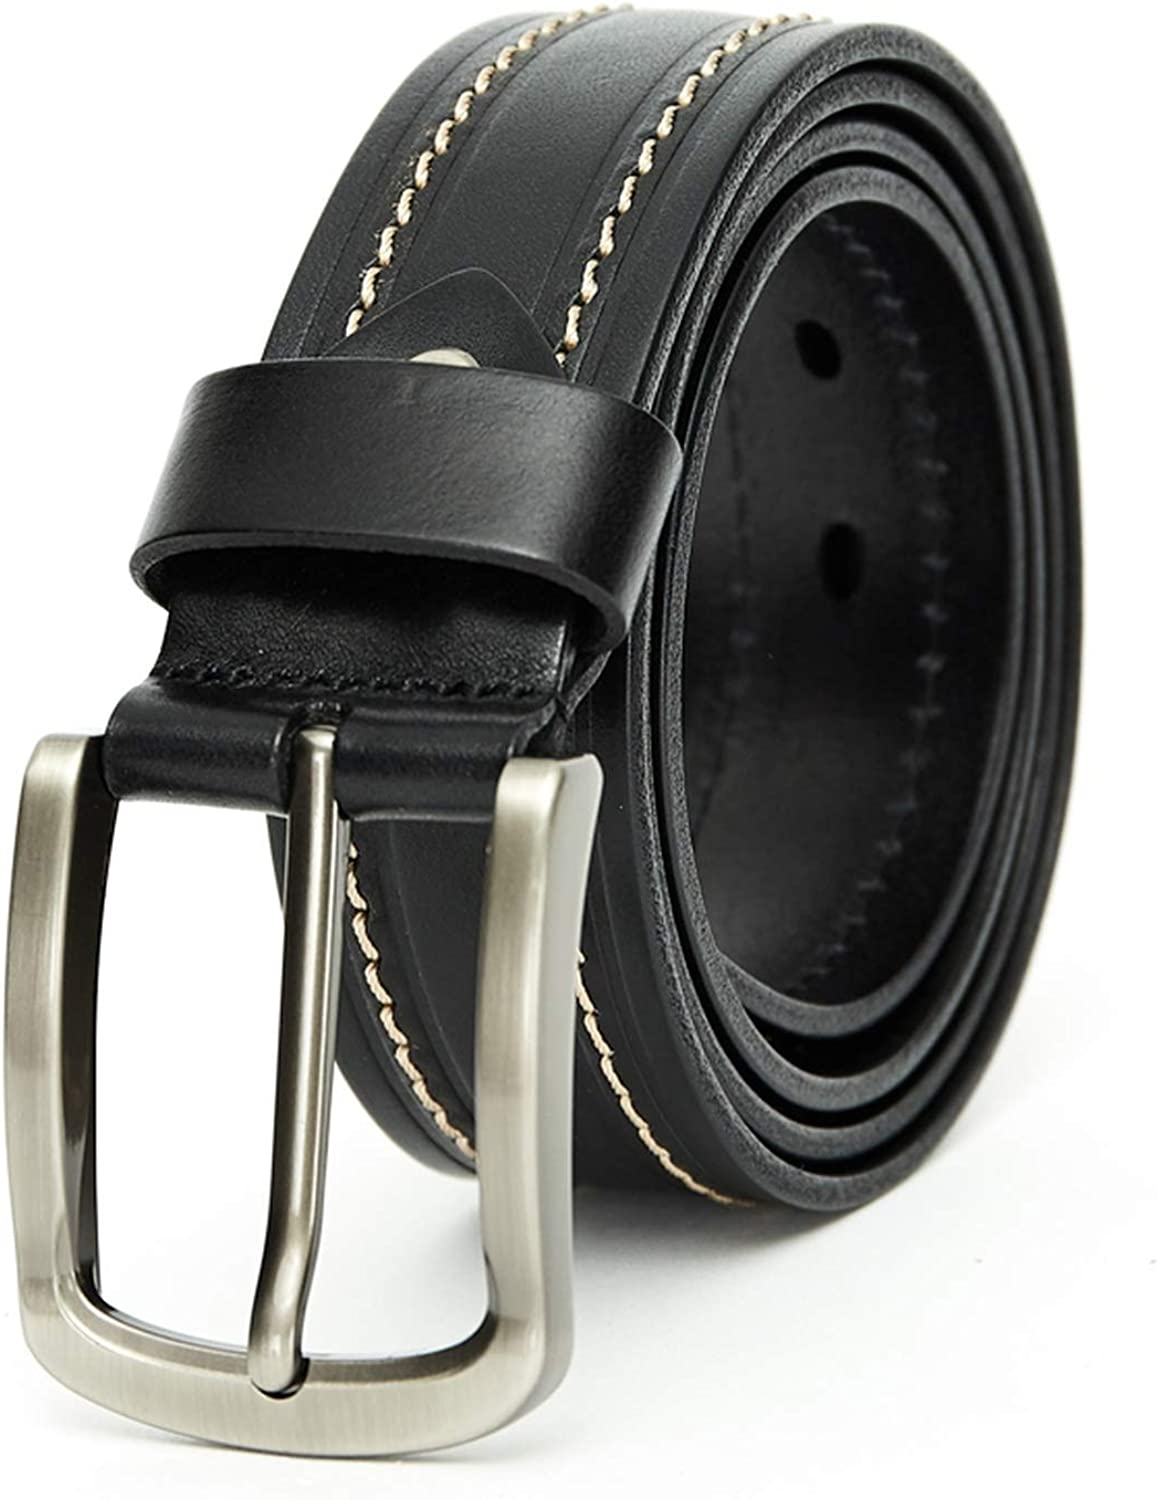 HEAVY DUTY SOLID LEATHER BELT PURE GENUINE LEATHER 100/% COWHIDE MADE IN USA